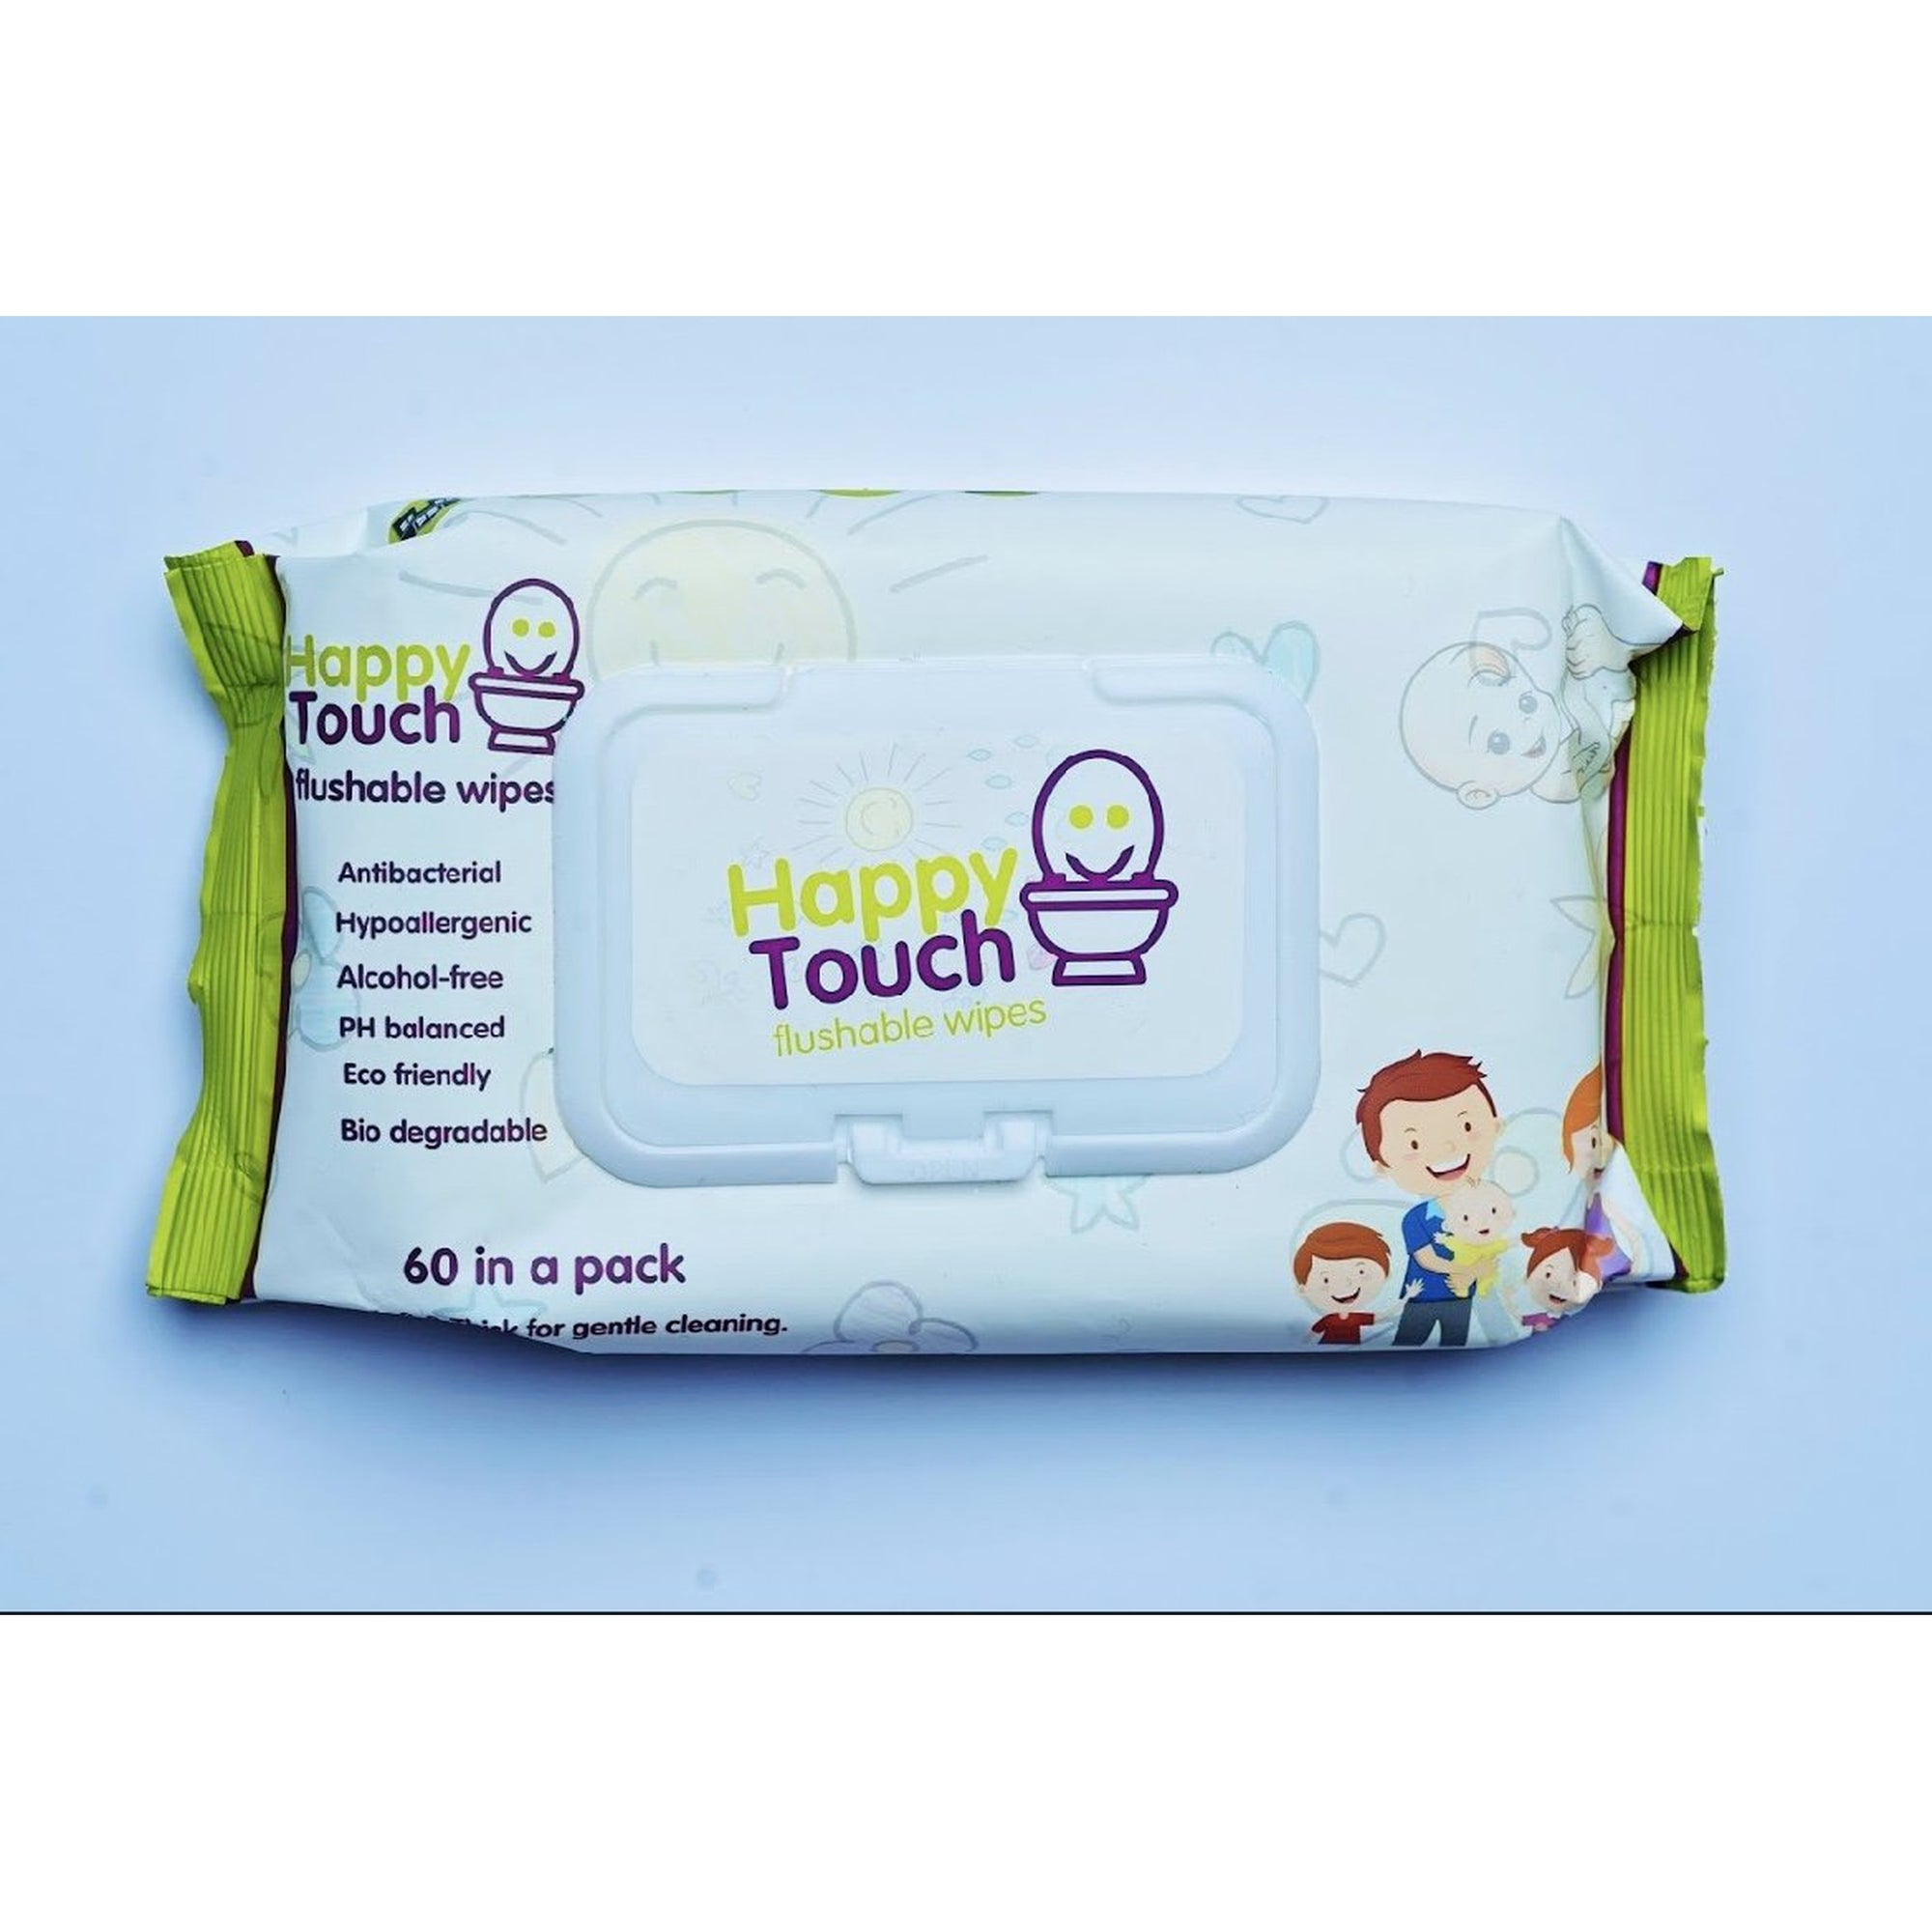 Happy Touch Flushable Wipes 60s (Aloe Vera)-Wipes-Mother and Baby Shop Kenya's #1 Online Baby Shop